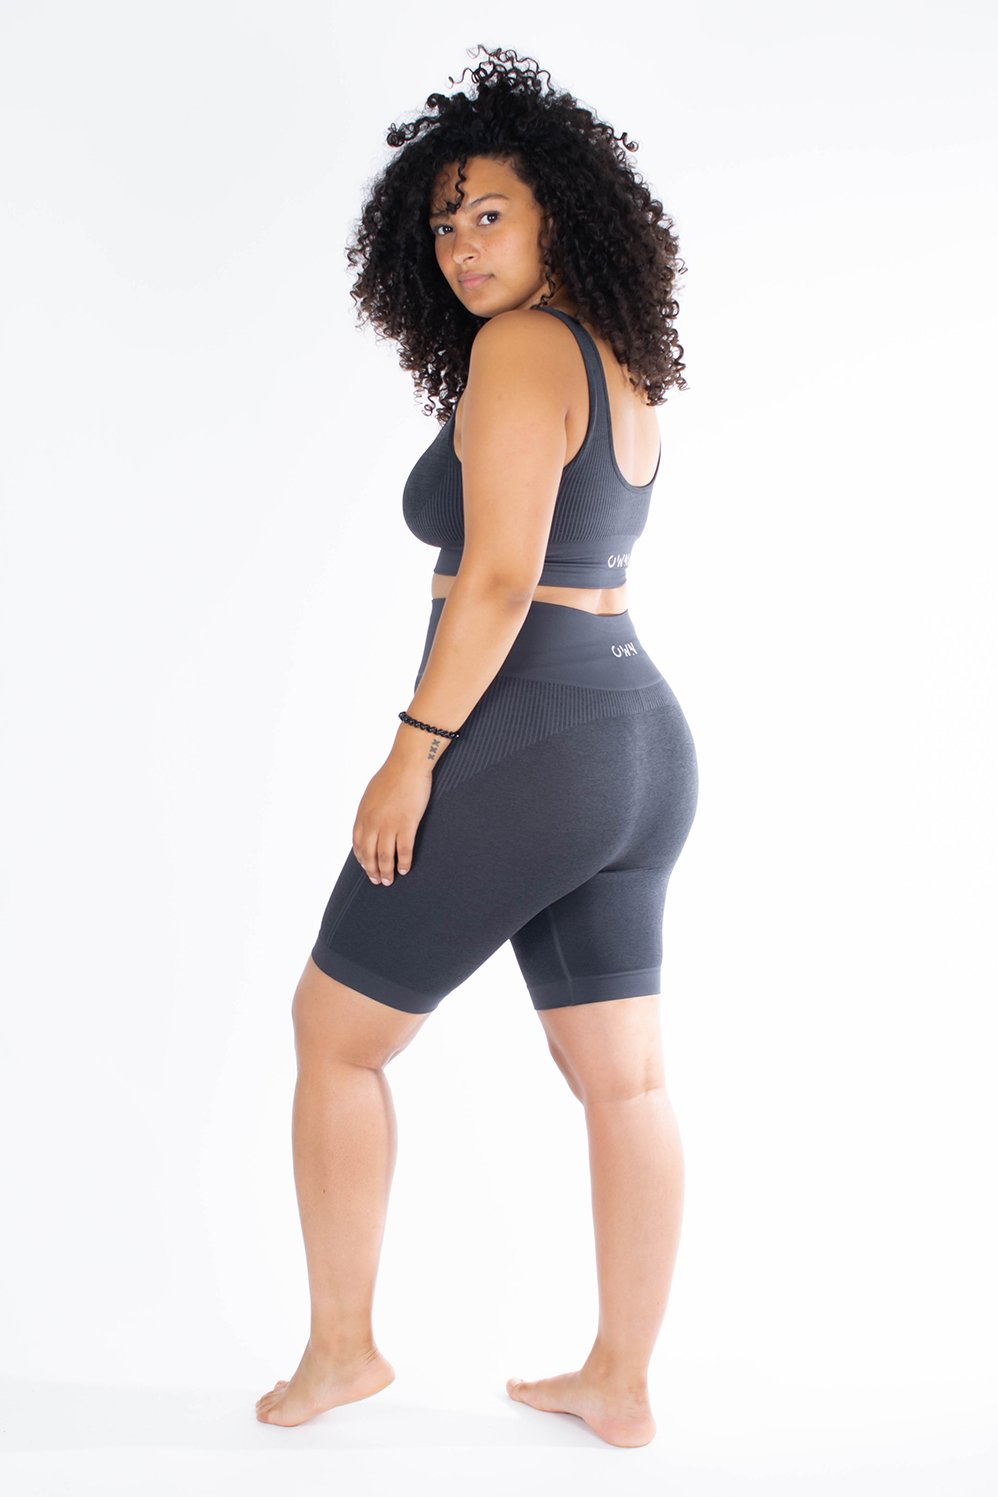 Nyssa Short Black - Own-Wear